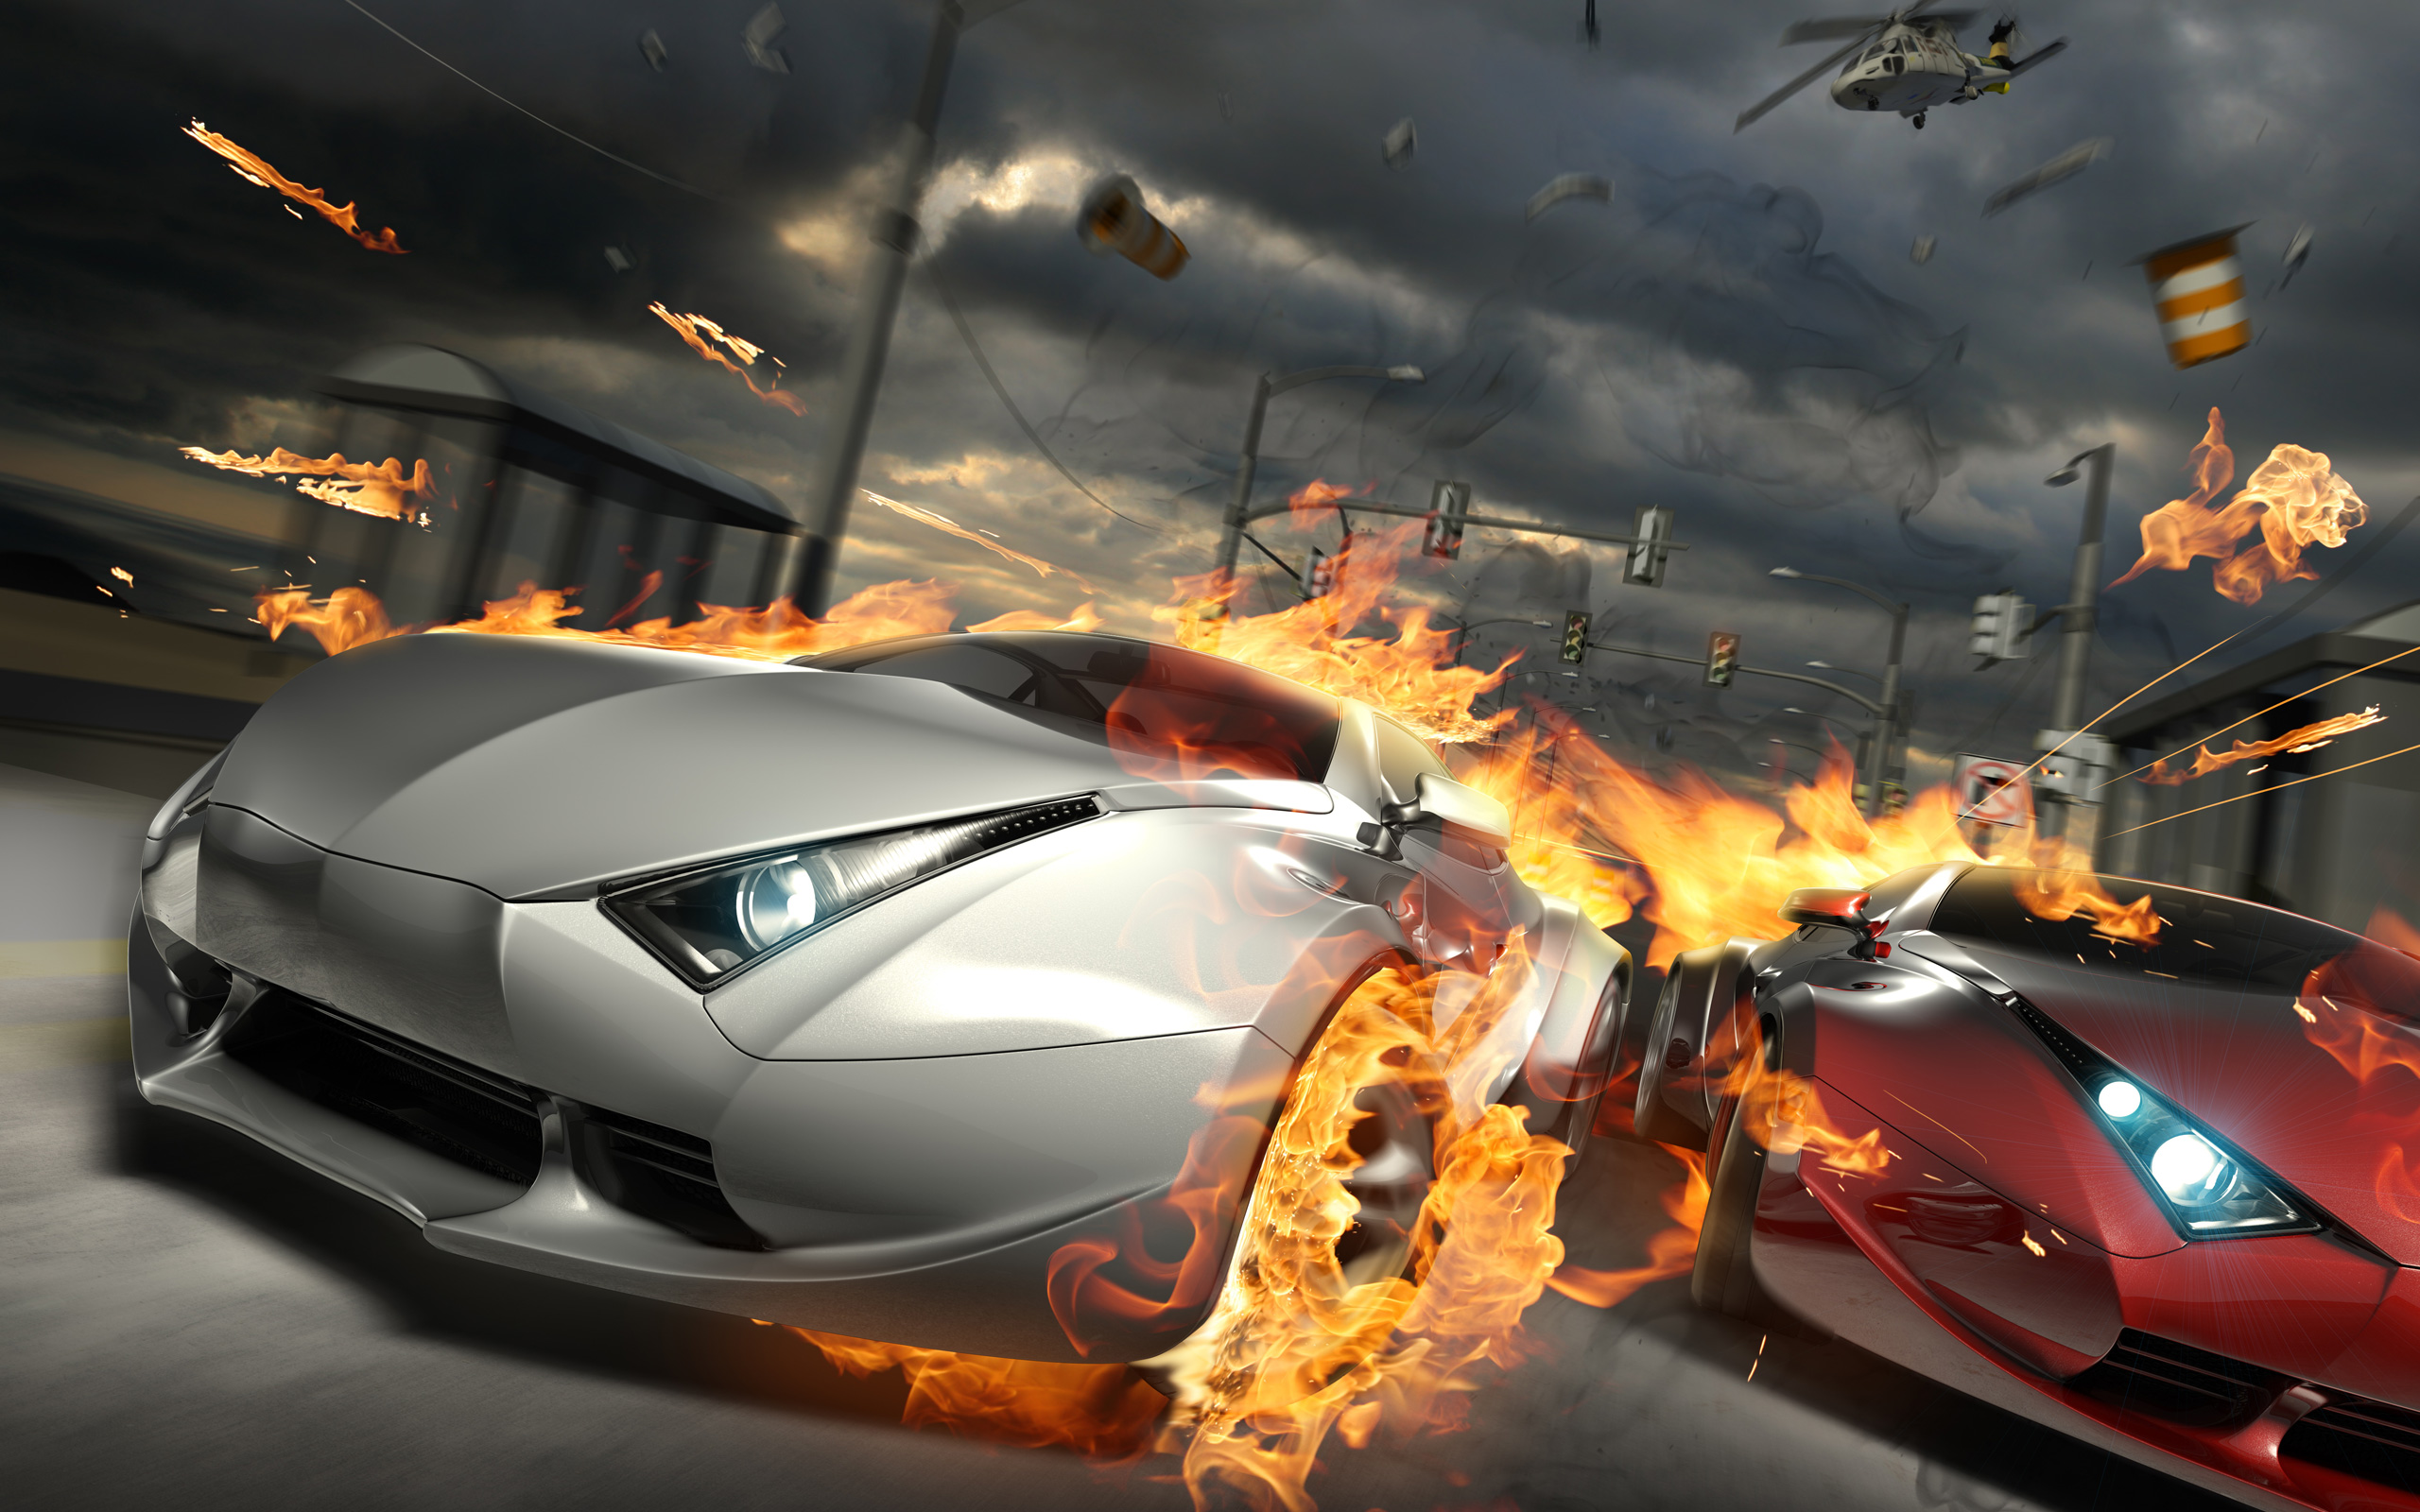 3d Cars Hd Wallpapers Wallpapersafari